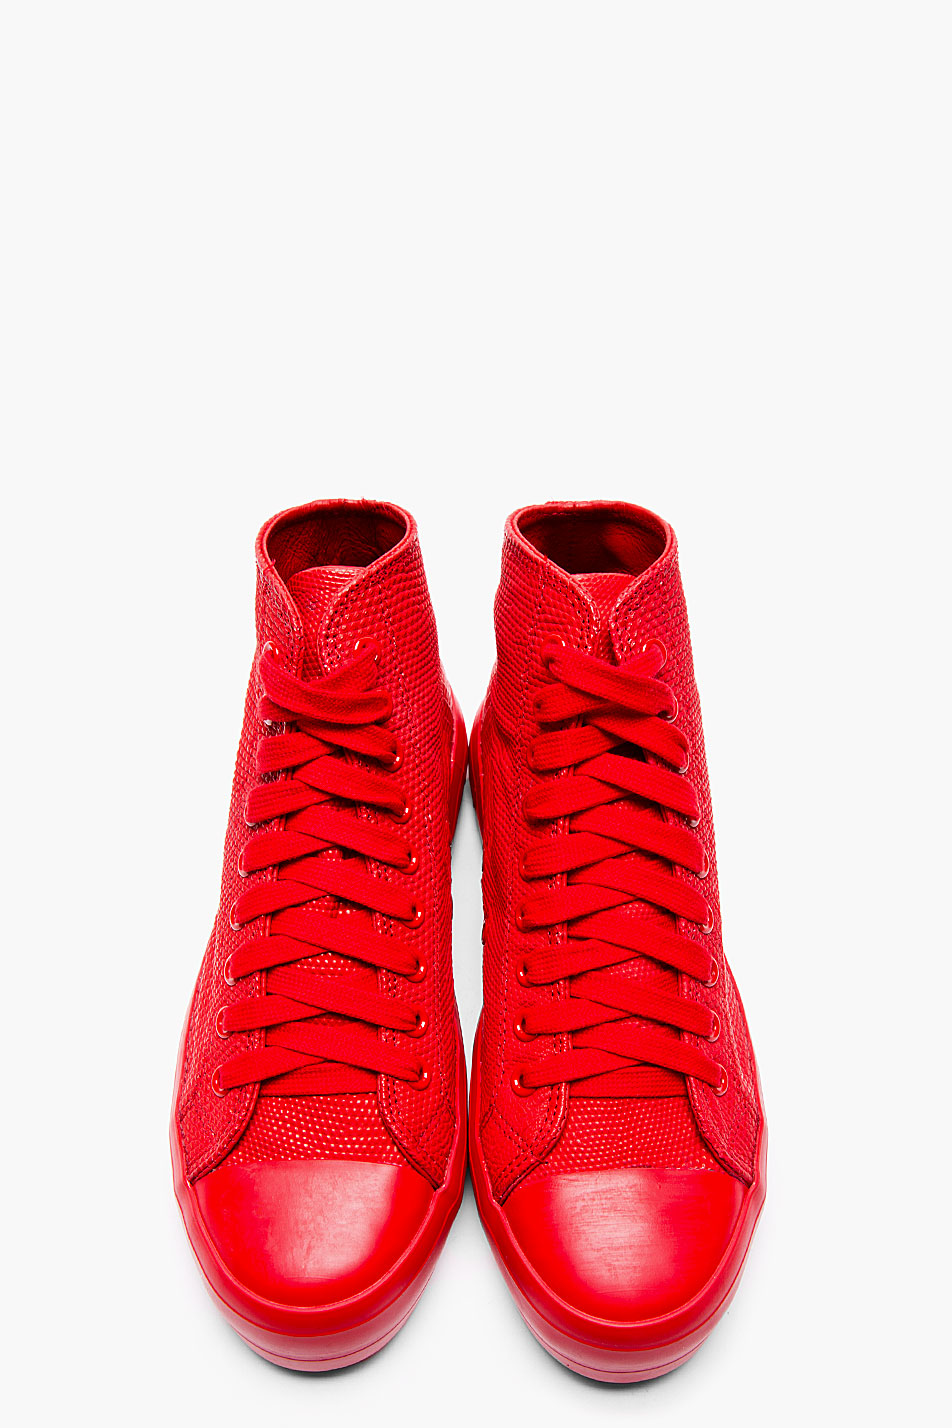 Red Lizardskin Hi-Top Sneakers Christian Peau Men's Fashion